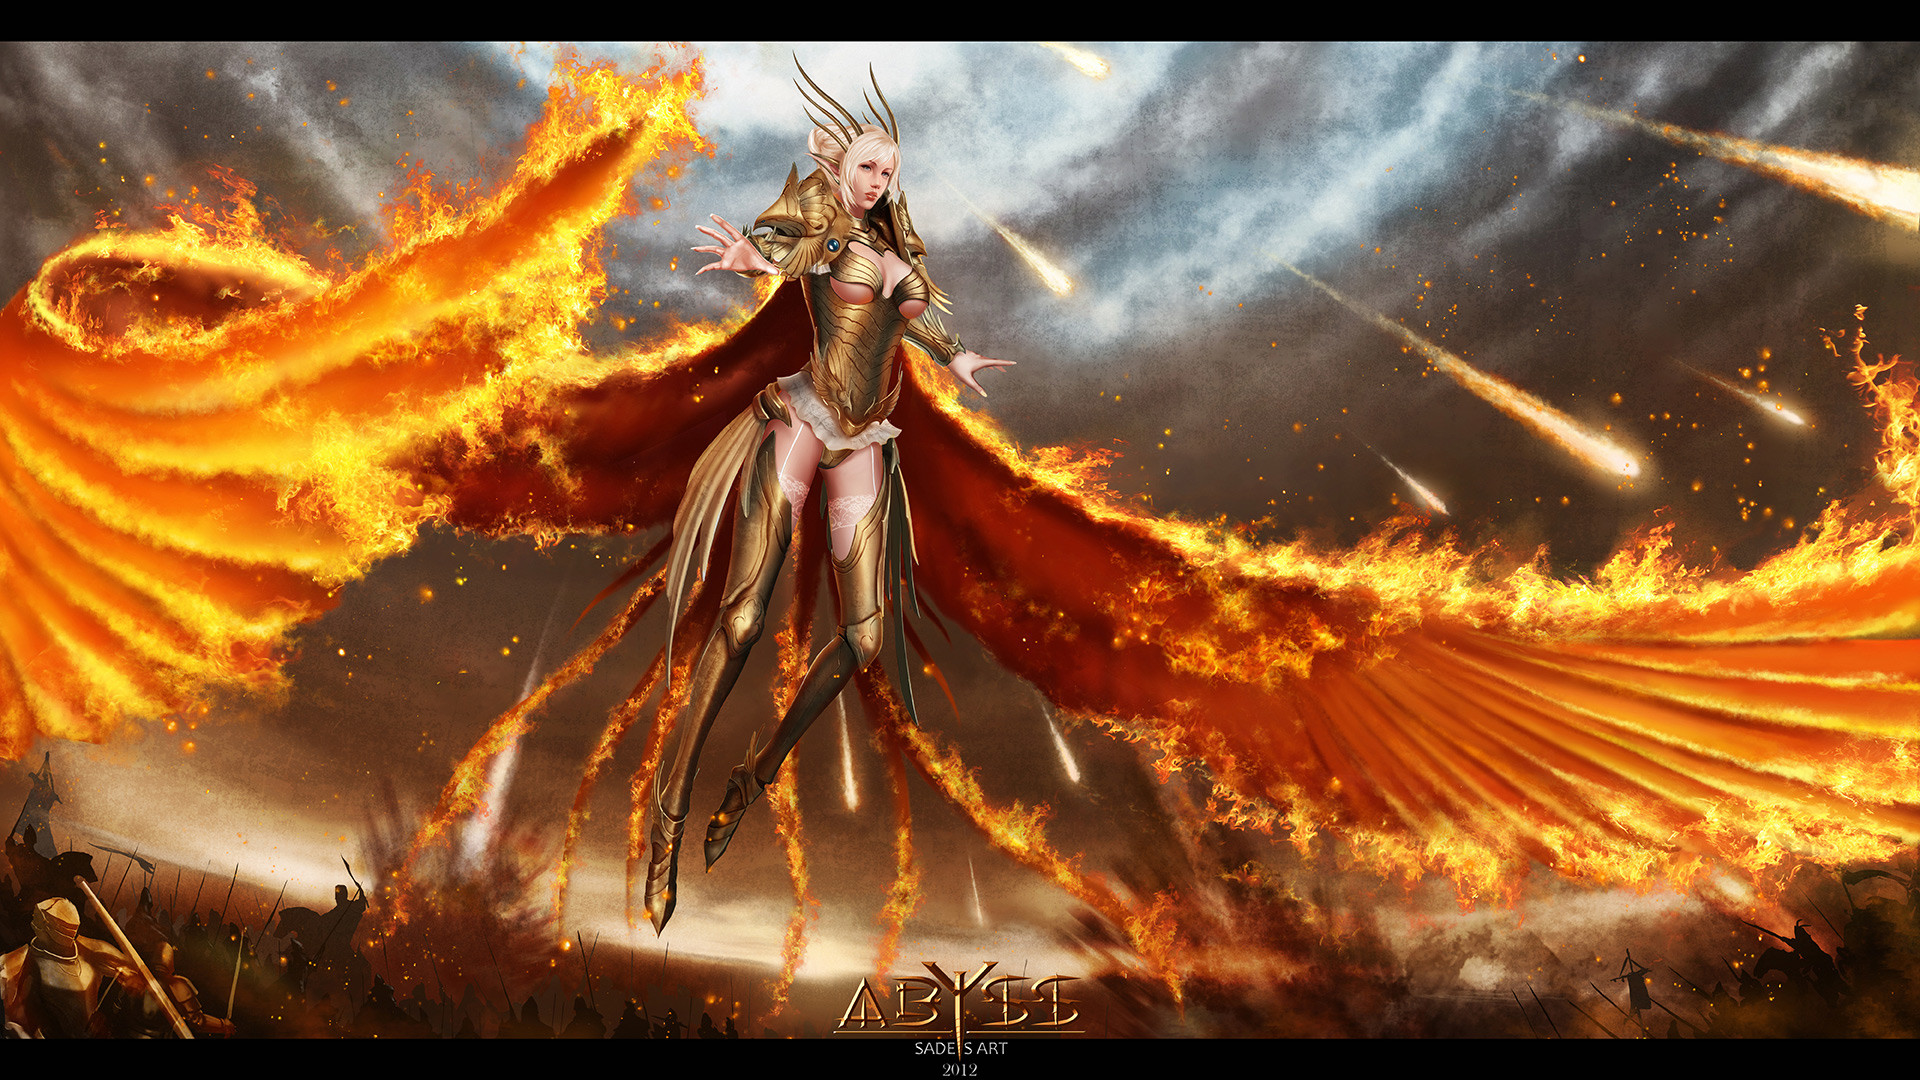 1920x1080 Find this Pin and more on Wallpapers by desidora. Afbeeldingsresultaat voor  elf on fire with wings